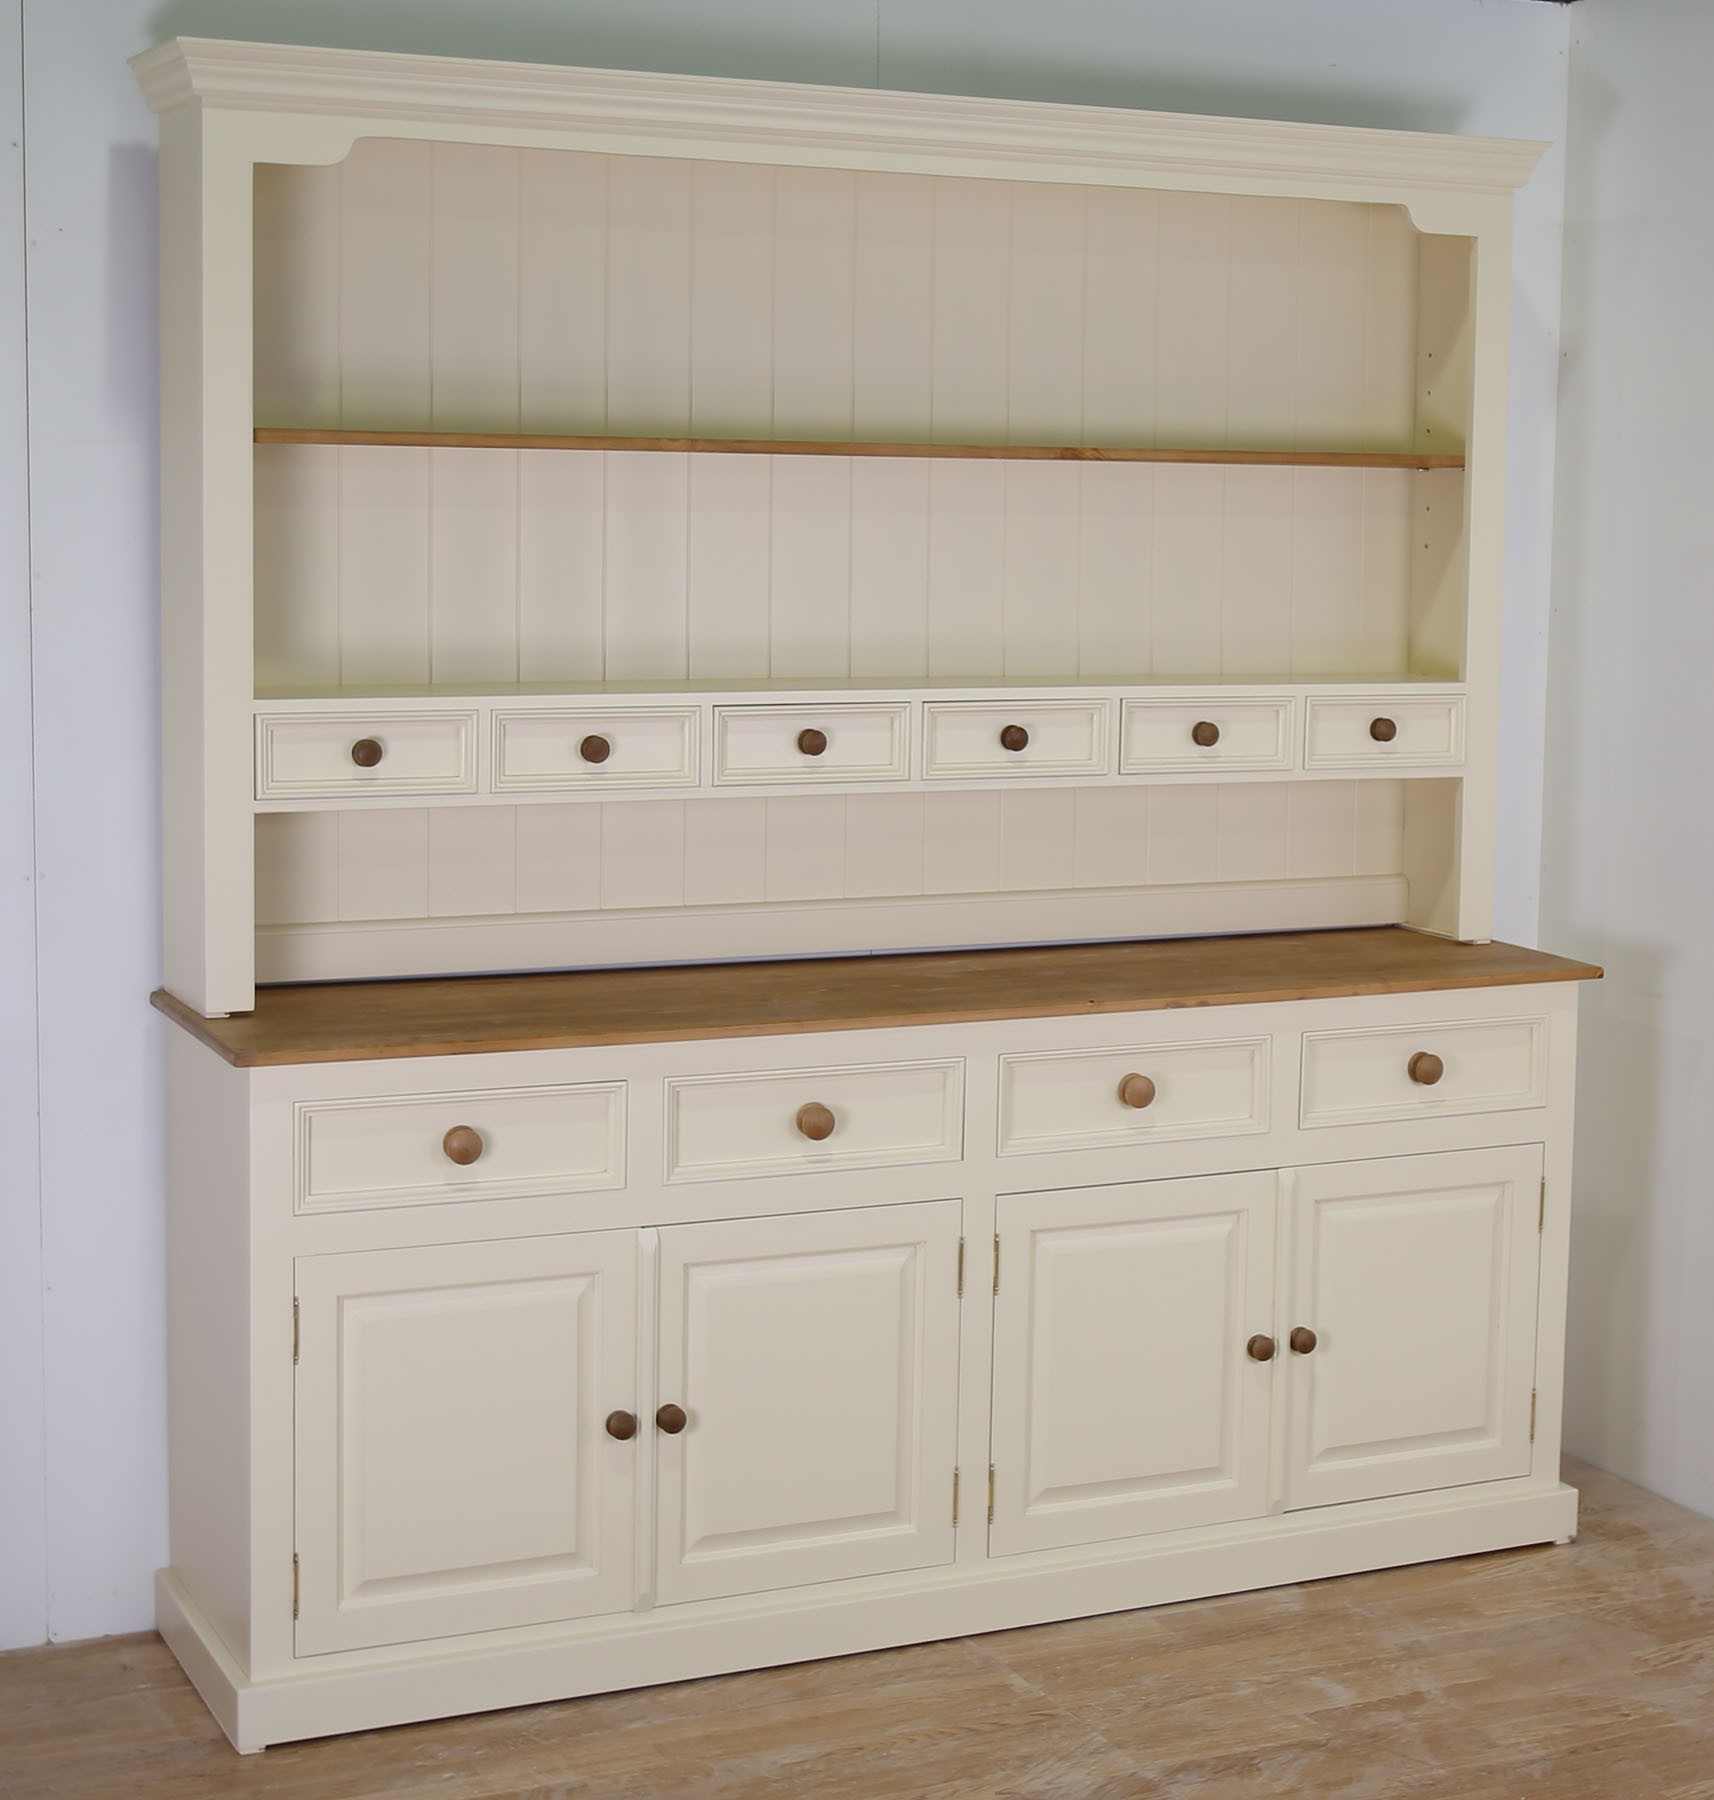 ... mottisfont solid pine painted large 4 door welsh dresser in 4 sizes VBZQAUM